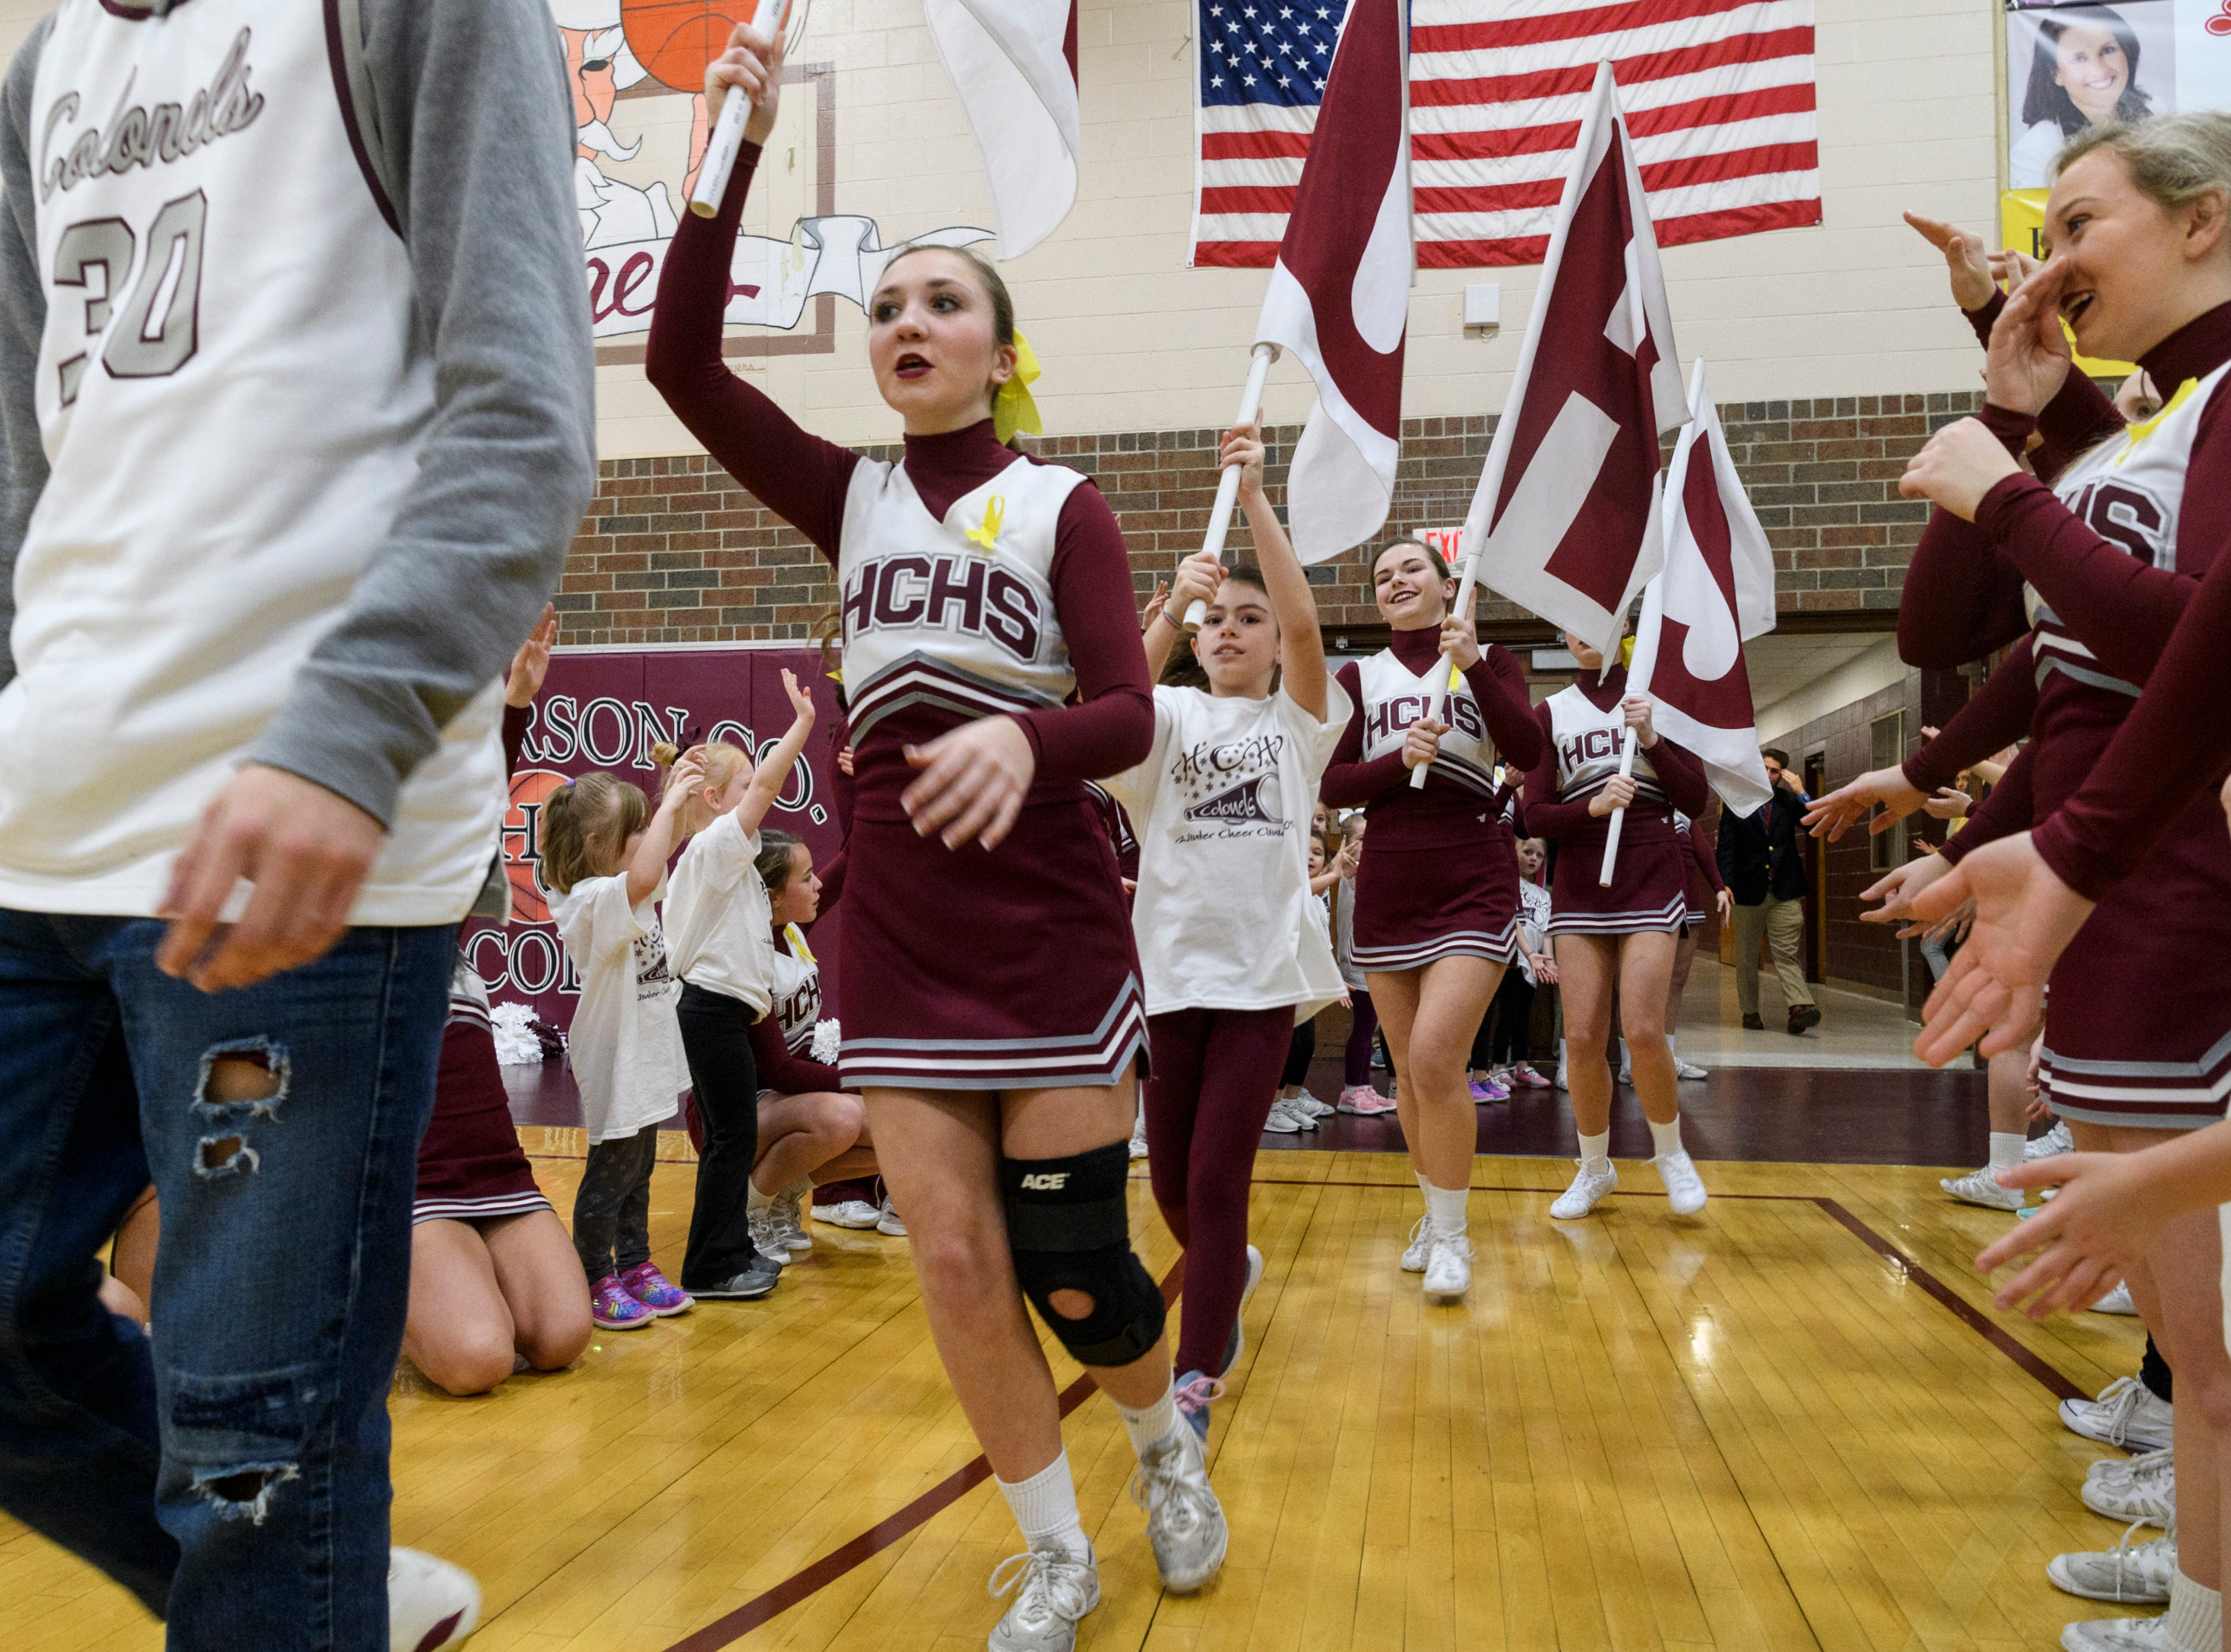 The Henderson County cheerleaders follow behind the boys basketball team as they rush the court before the start of the game against the Christian County Colonels at Henderson County High School in Henderson, Ky., Friday, Dec. 14, 2018. Christian County defeated Henderson County 79-71.